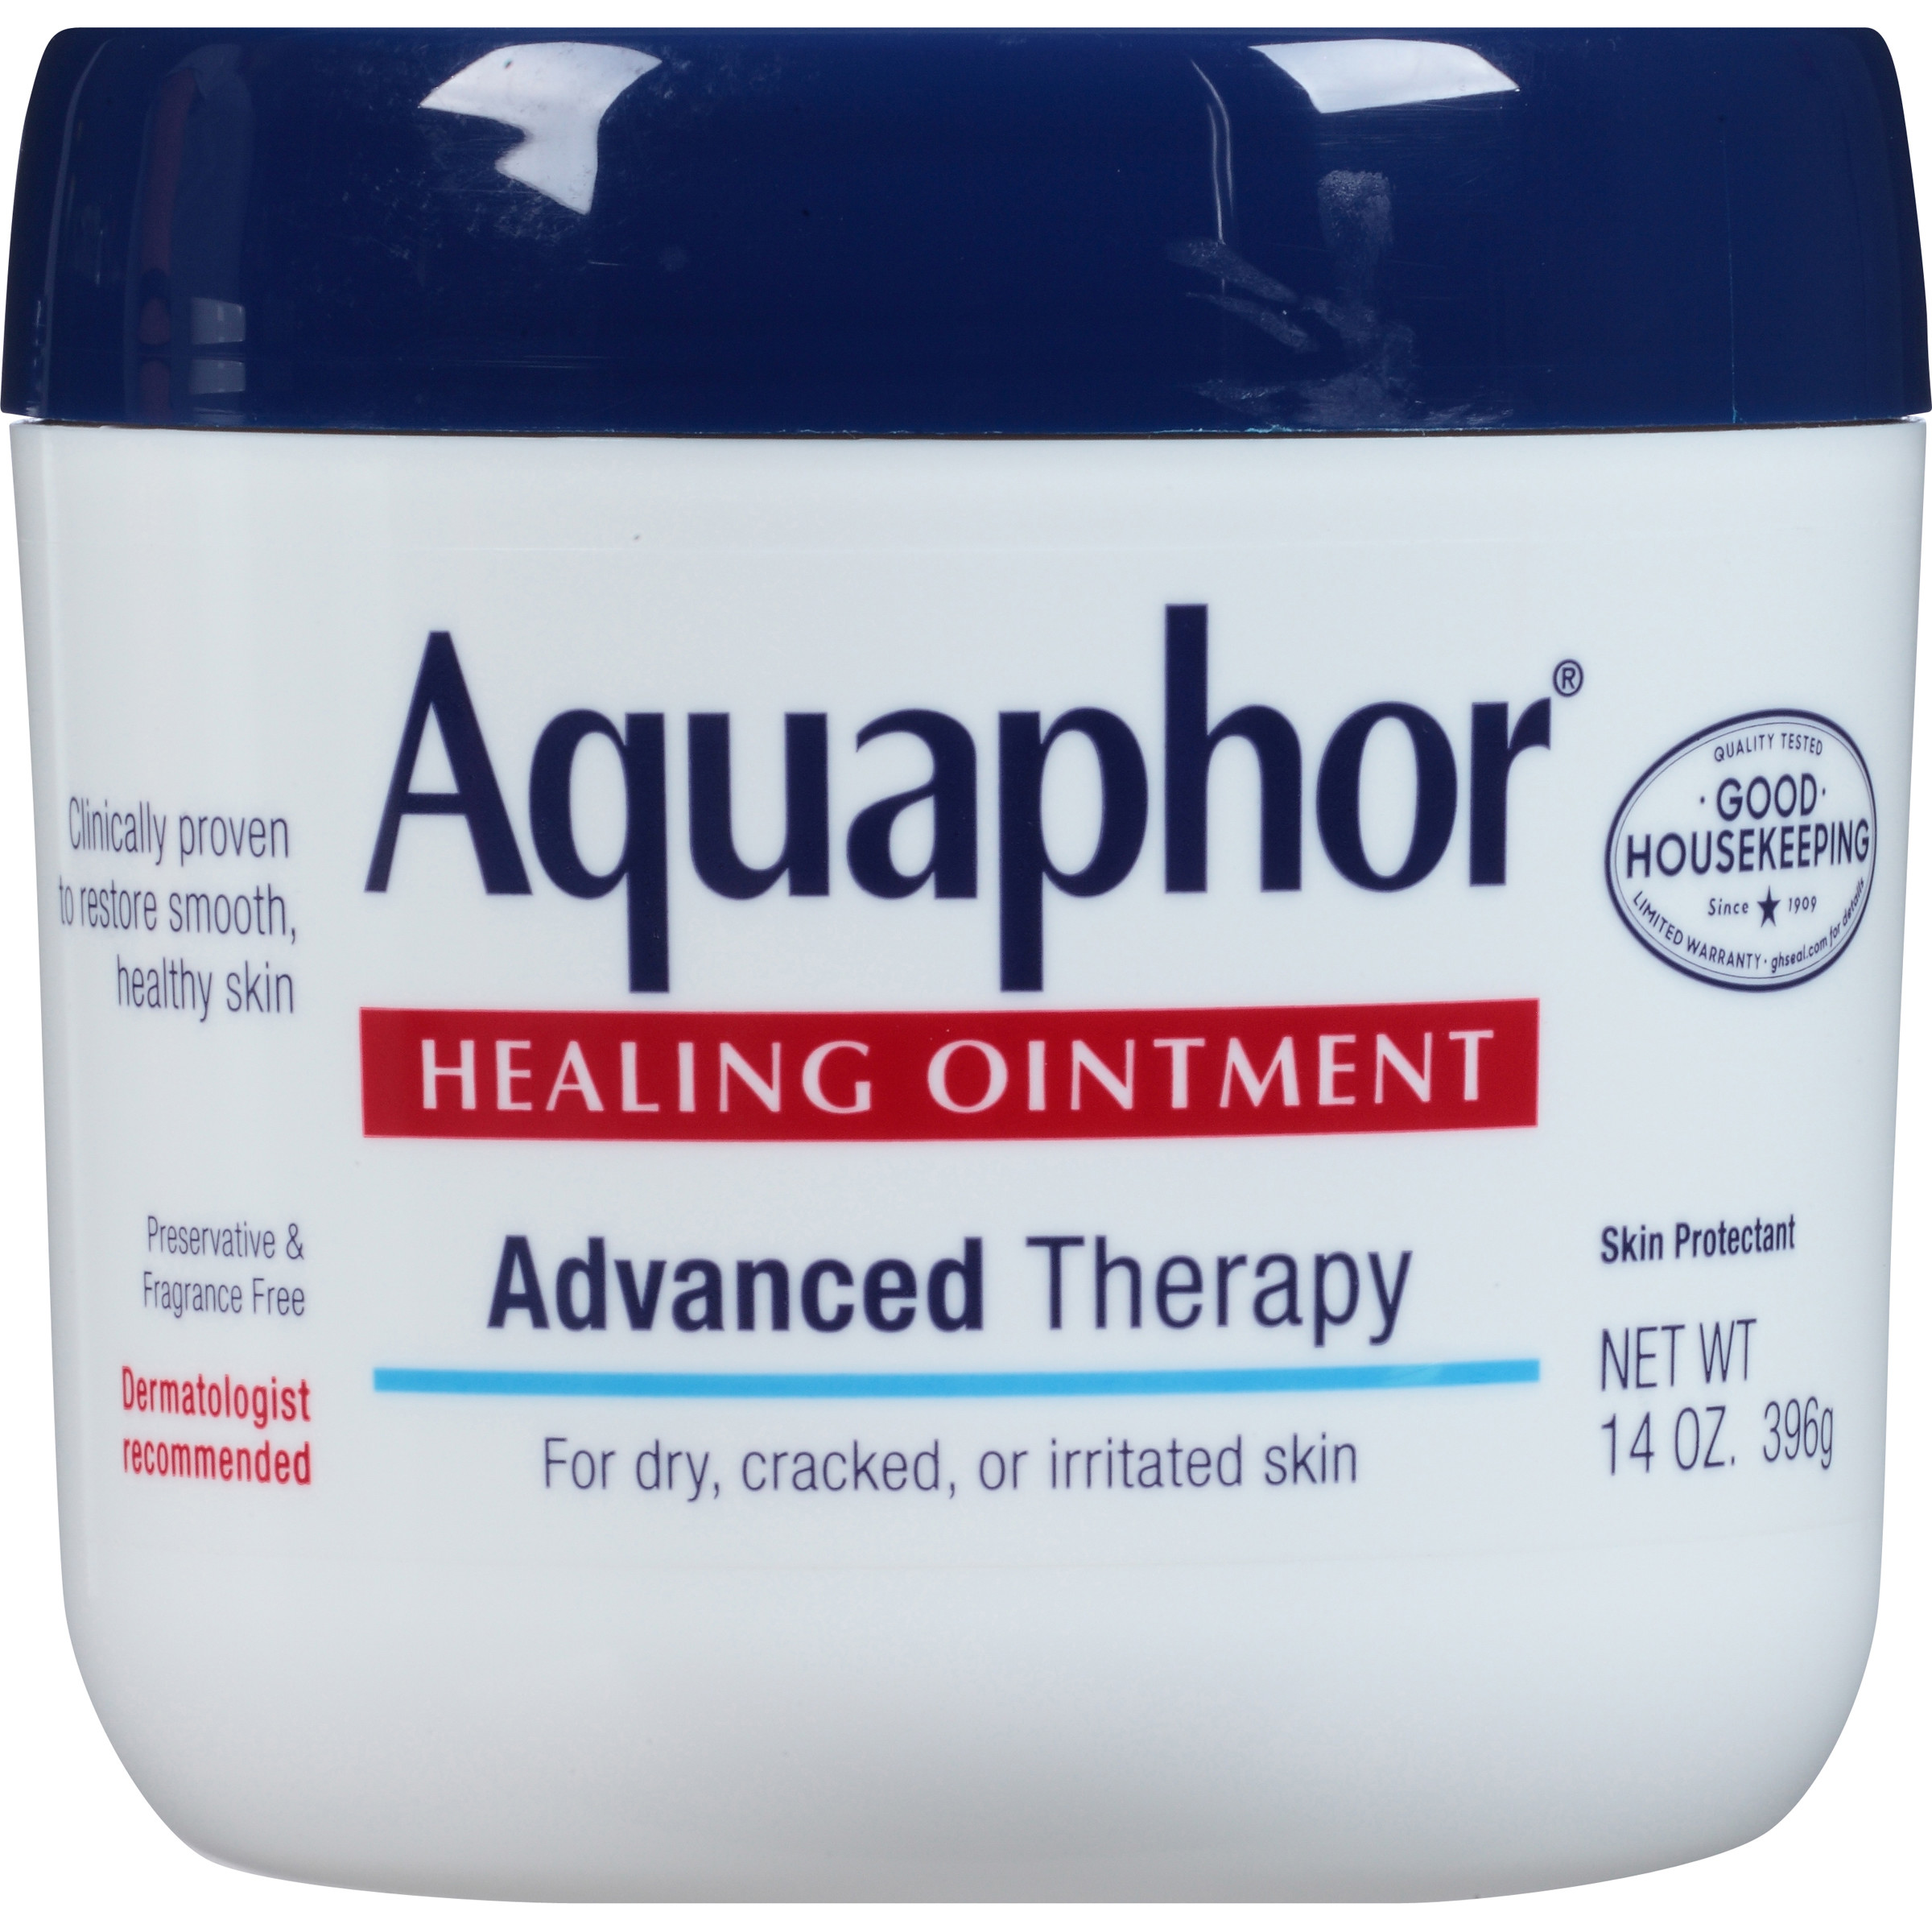 Aquaphor® Advanced Therapy Healing Ointment Skin Protectant 14 oz. Jar